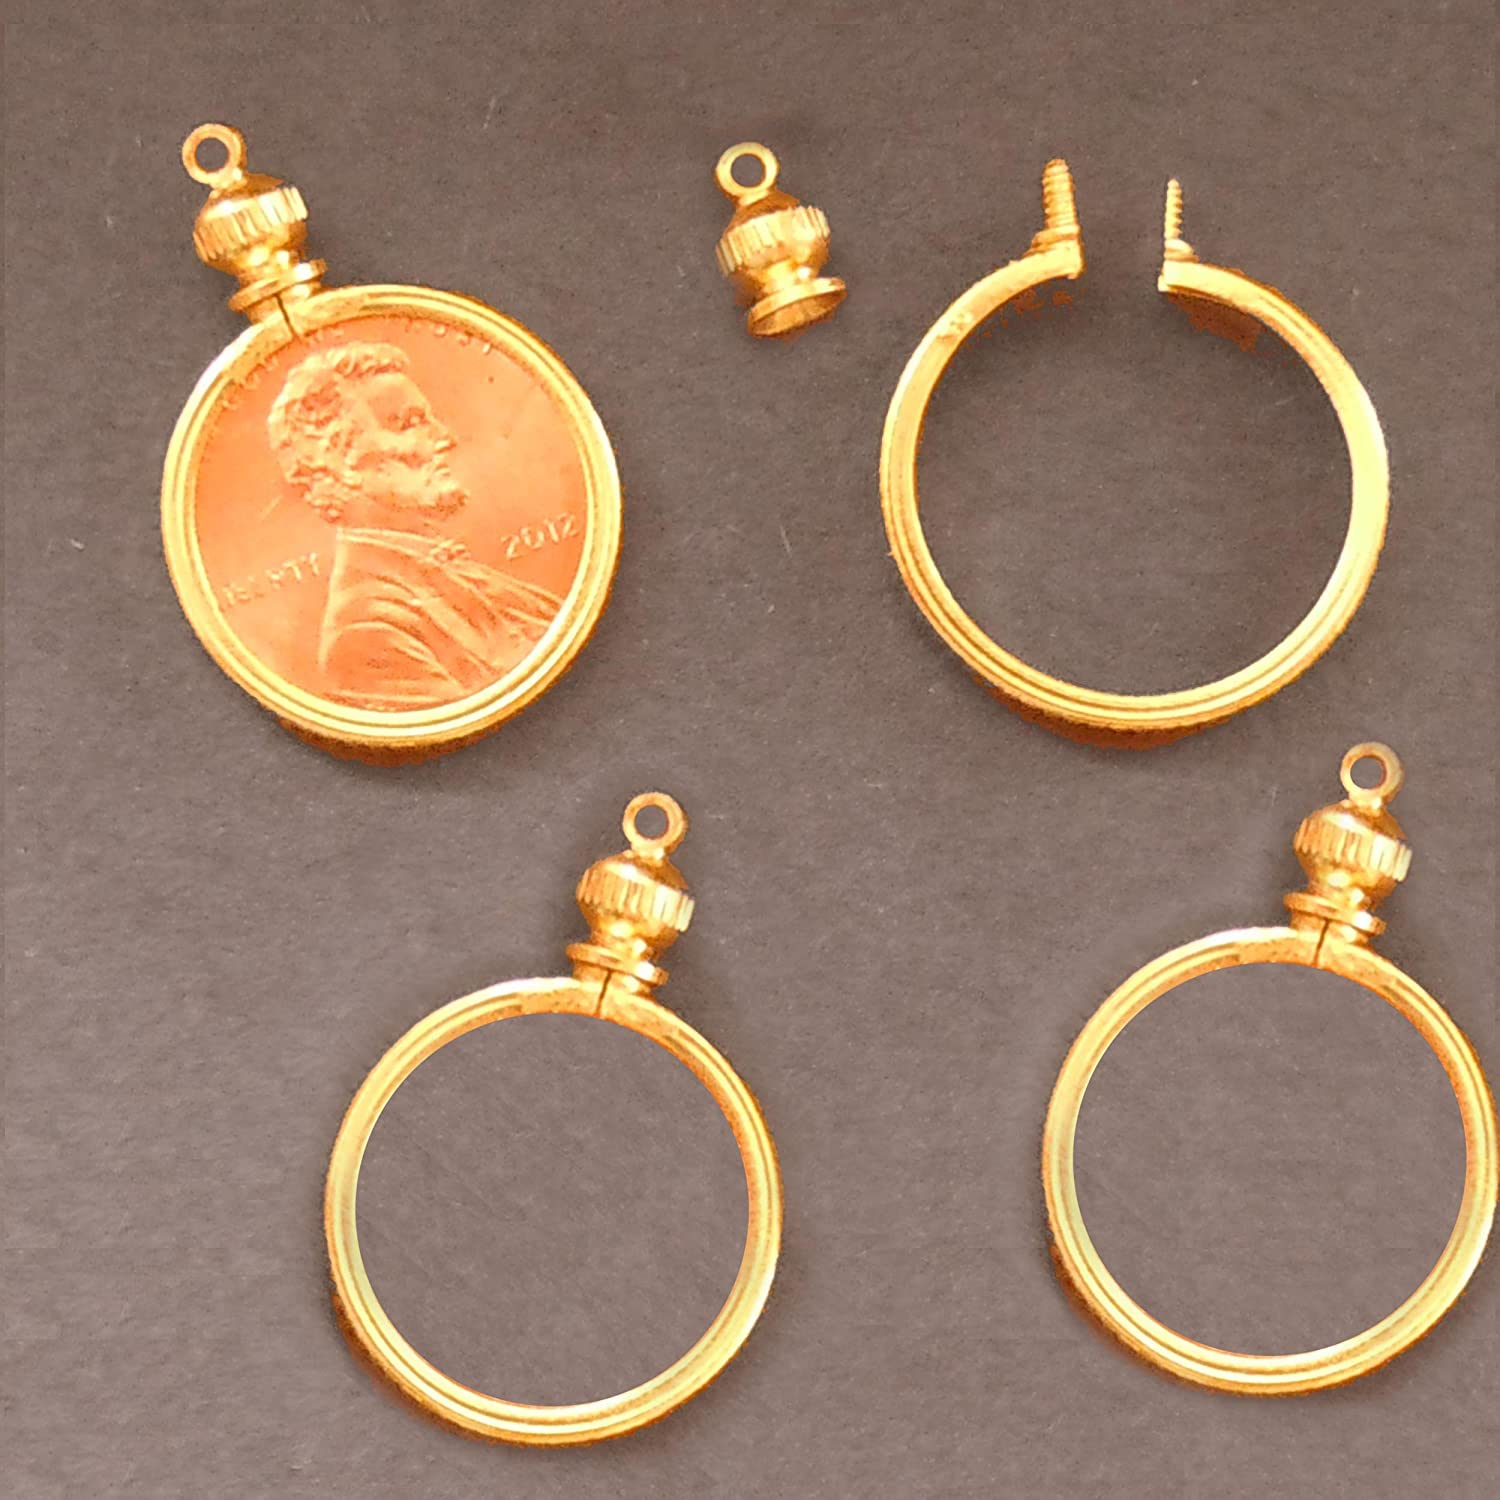 Necklace Pack of 4 1 Cent // USA Penny Coin Holder Bezel Gold Tone ~ for Charm Display Pendant